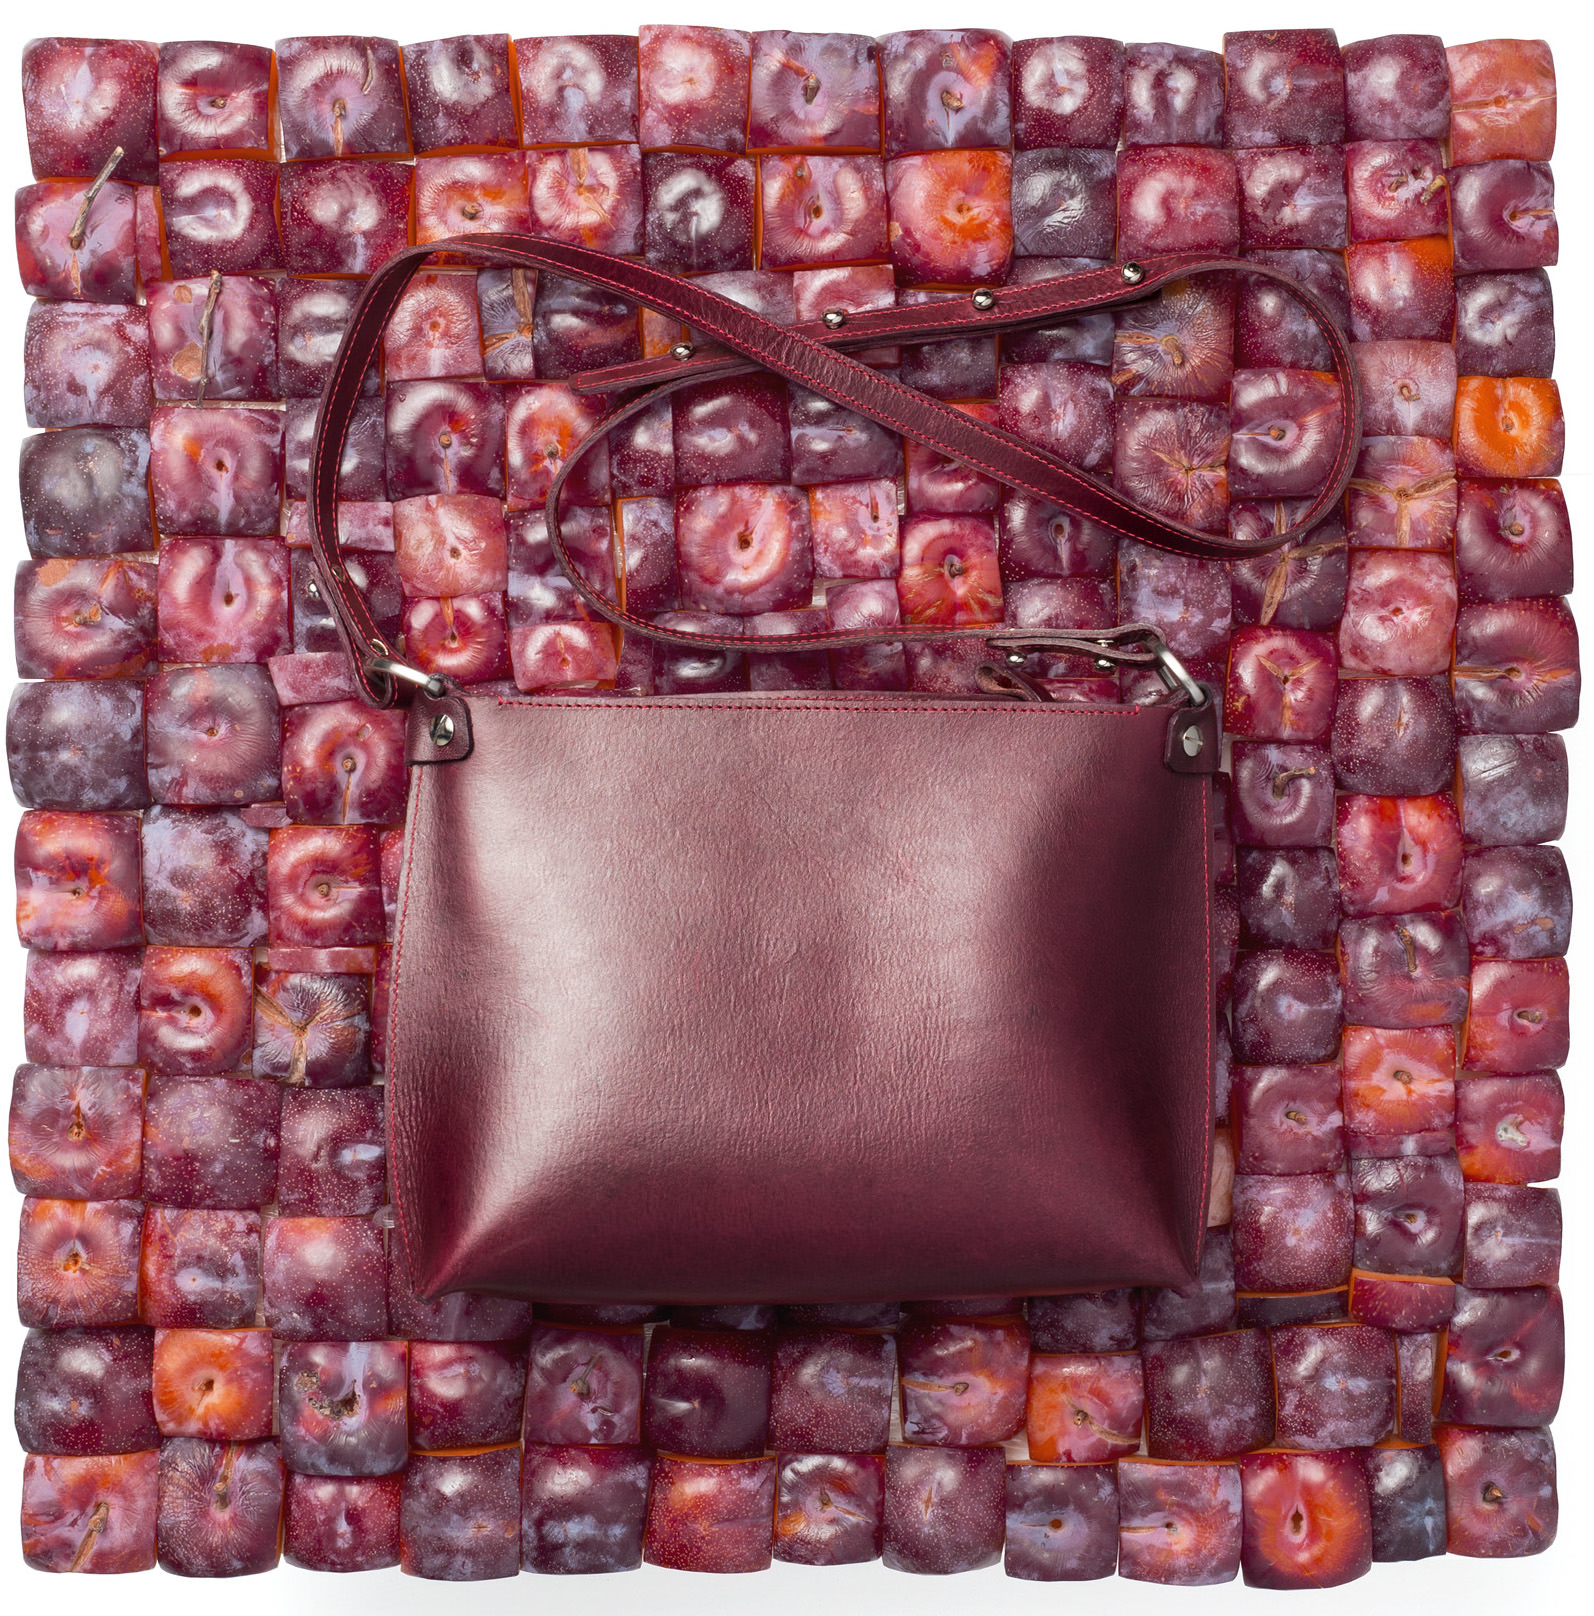 Stella_Soomlais_purple_leather_purse_with_plums_photo_Altrov_v